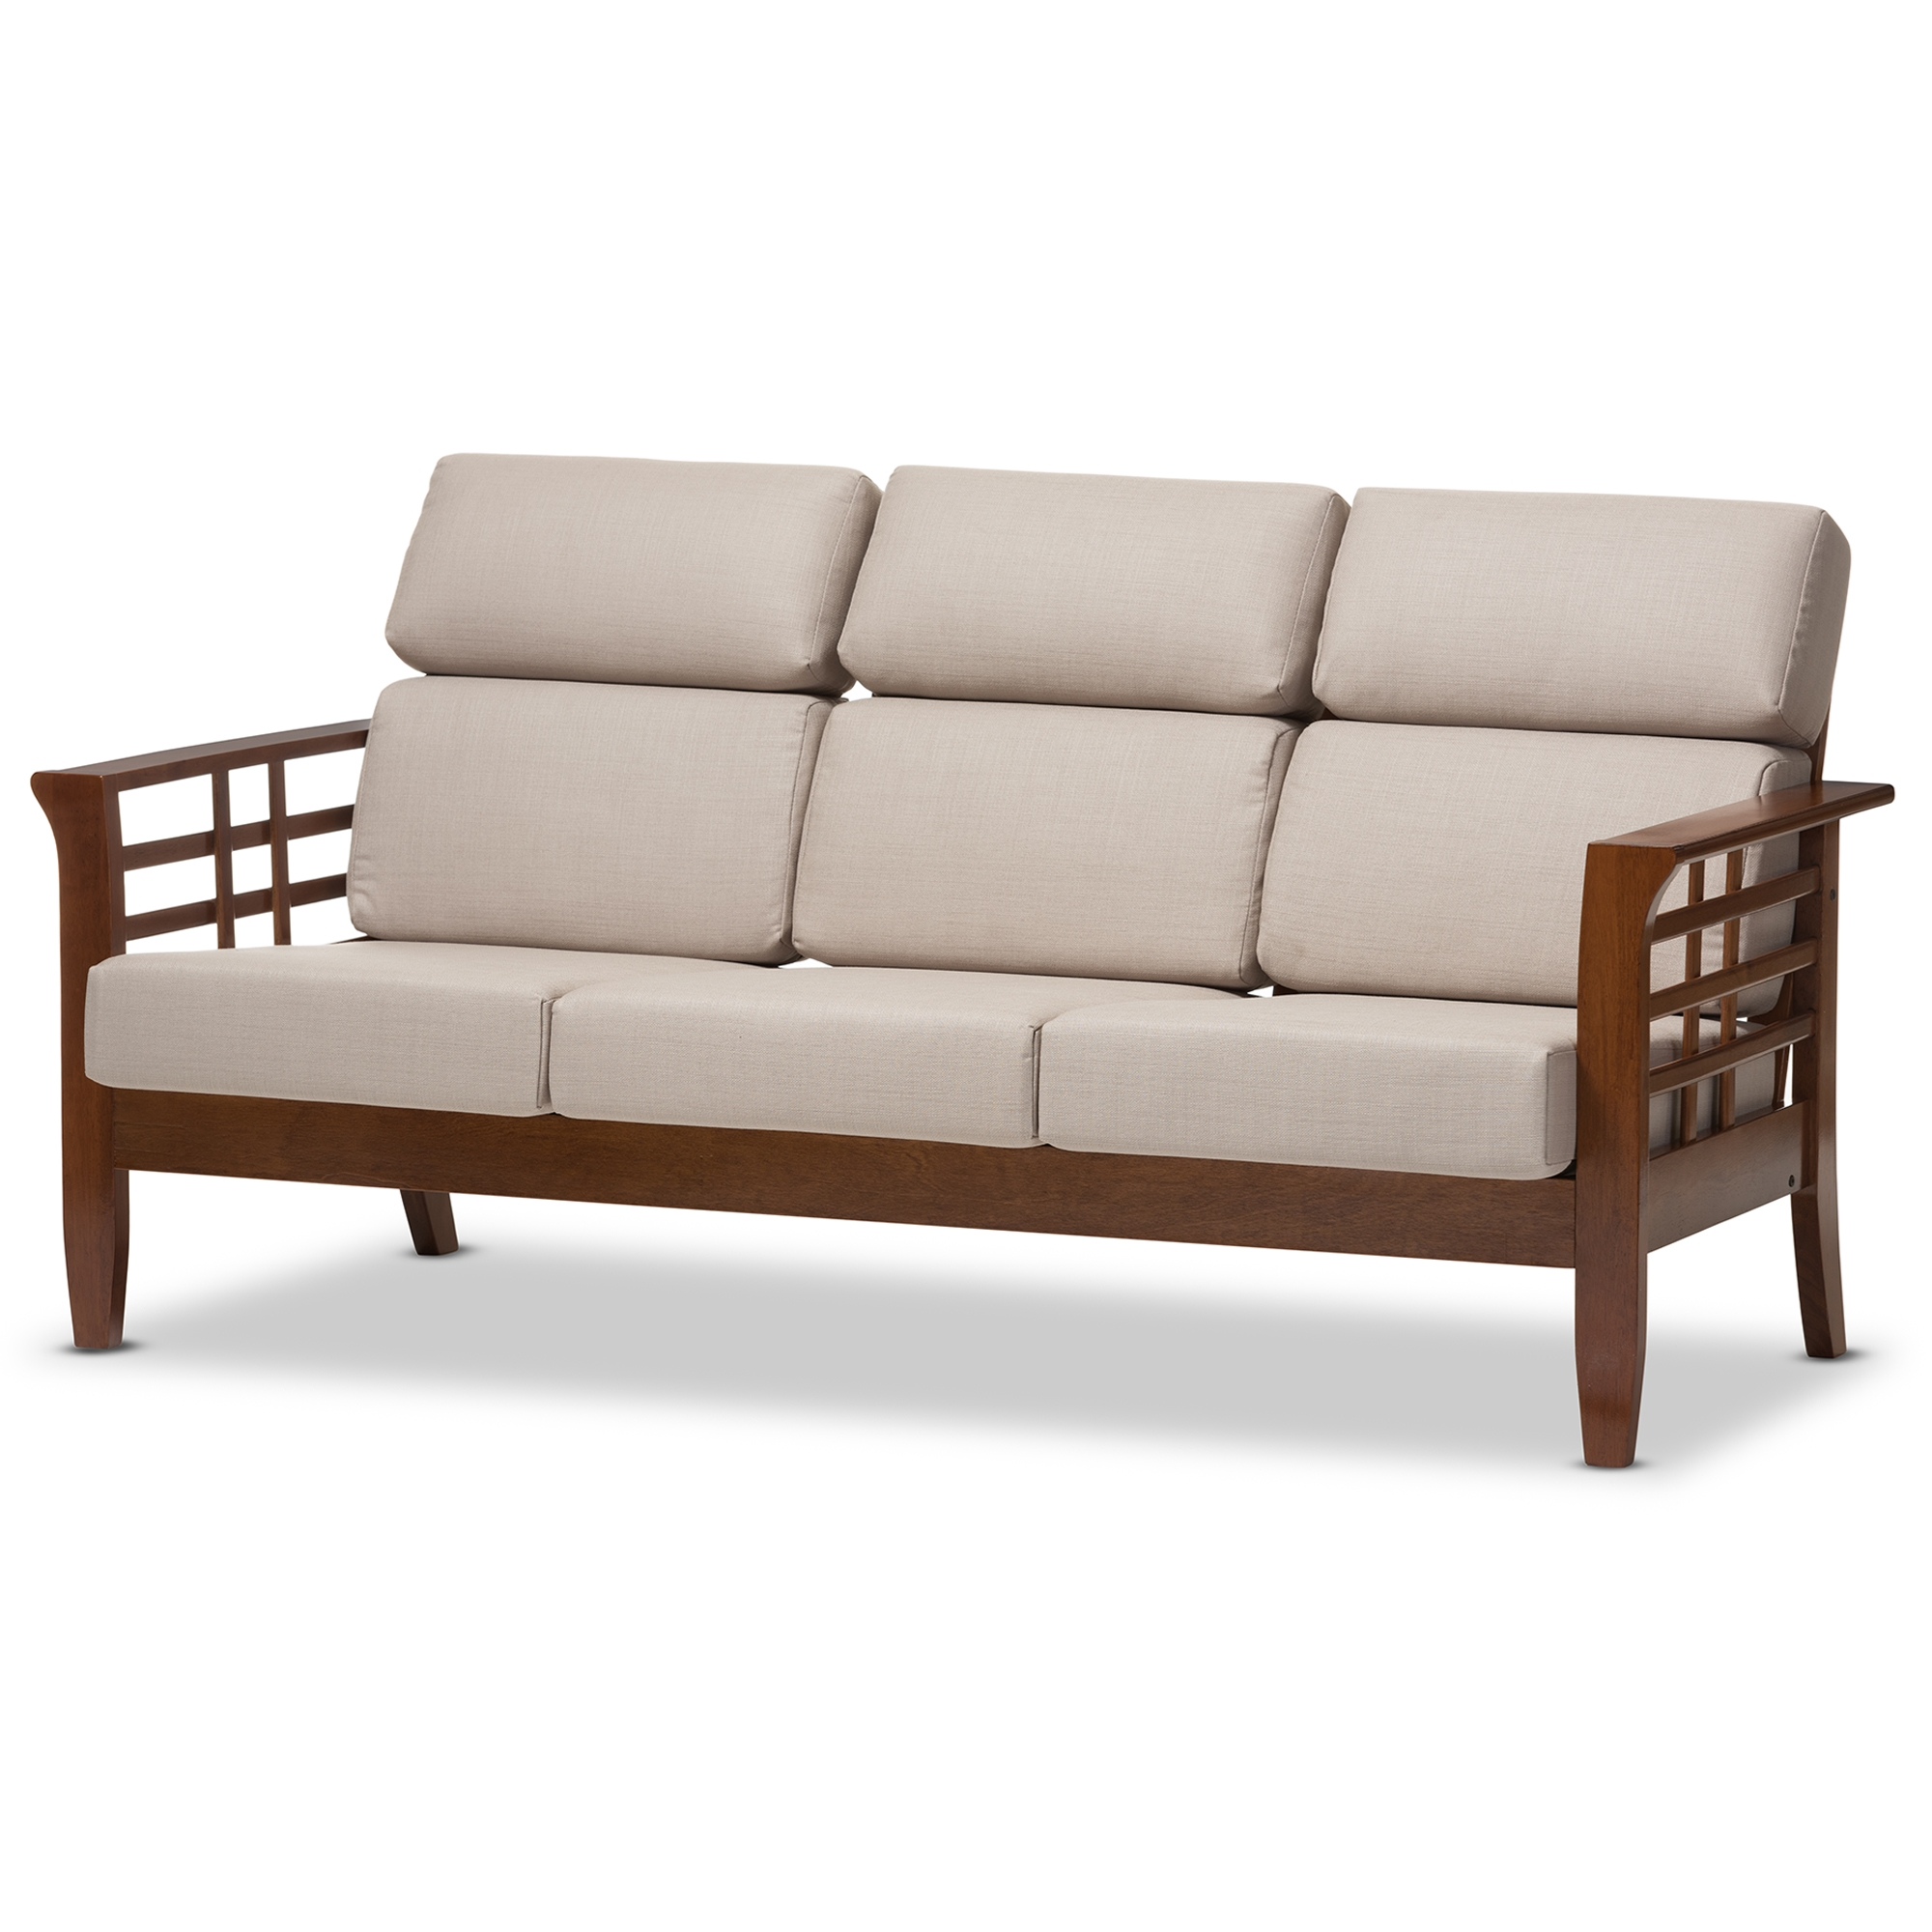 ... Baxton Studio Larissa Modern Classic Mission Style Cherry Finished  Brown Wood And Beige Fabric High Back ...